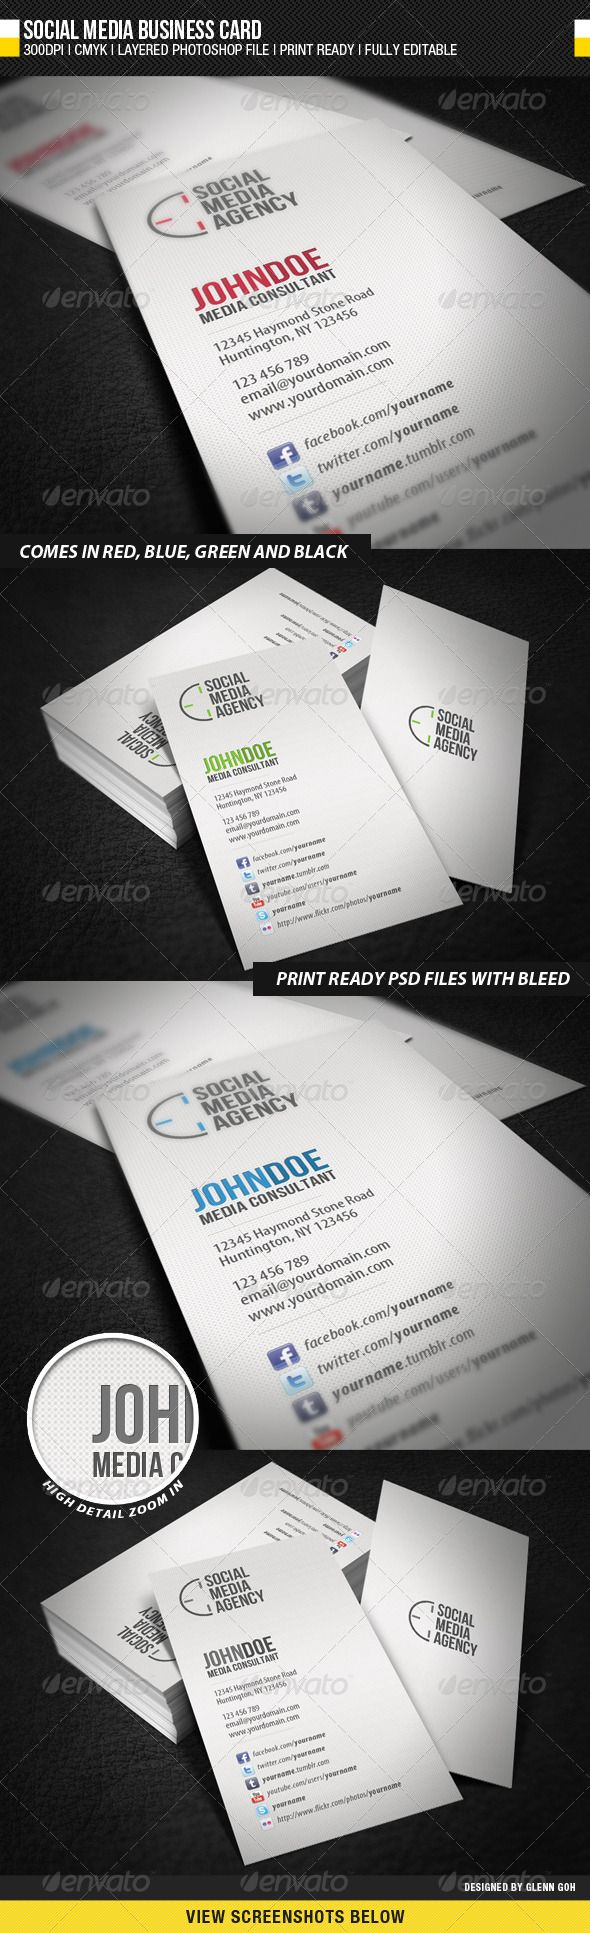 Social Media Business Card | Pinterest | Business cards, Business ...